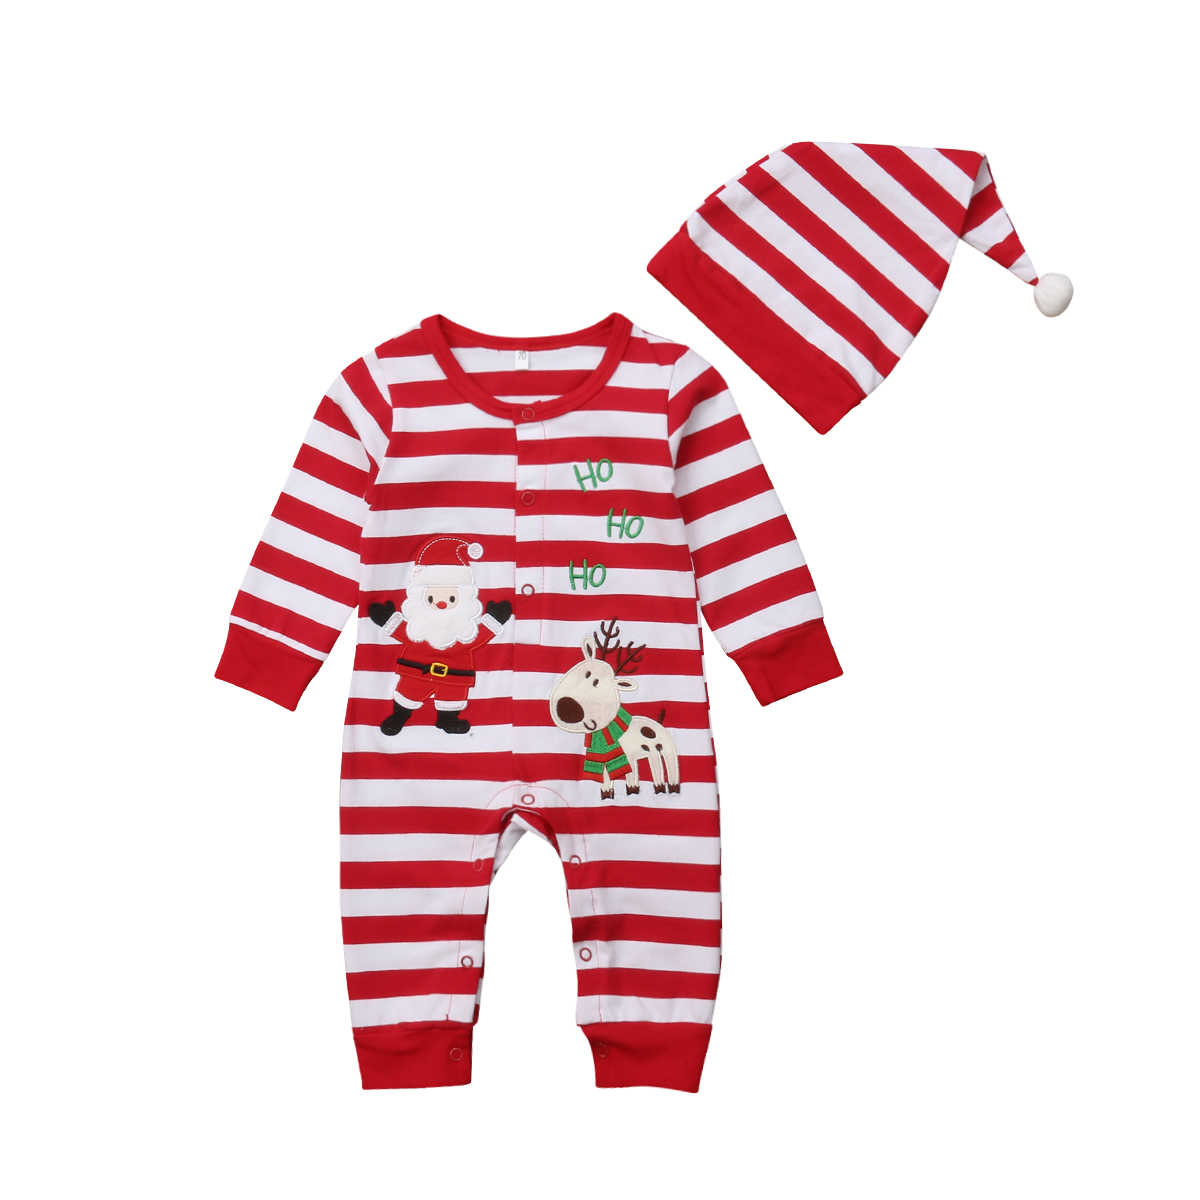 fa771fbc22e Christmas Rompers Long Sleeve Baby Boys Girls Red Striped Jumpsuit Romper  Hat PJS Outfits